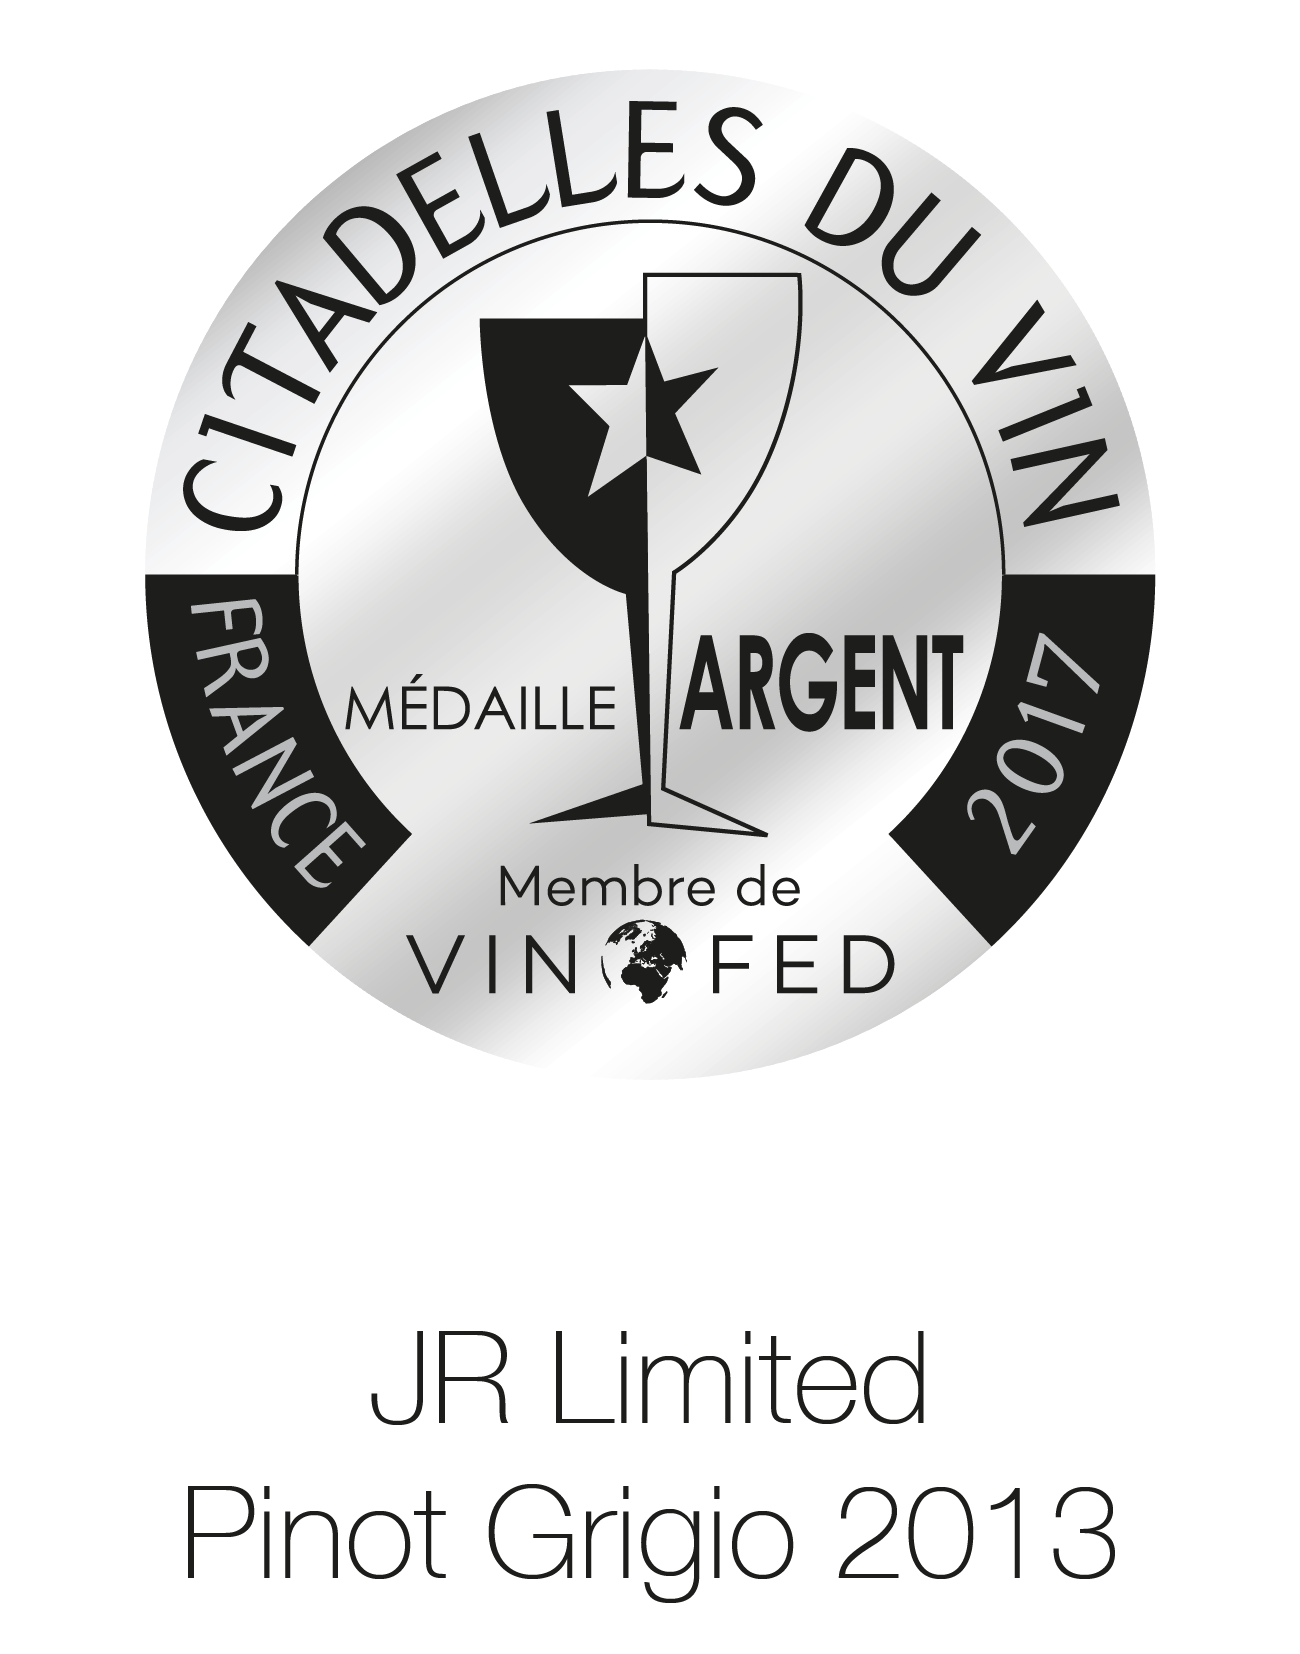 JR Wine - Limited Edition - Pinot Grigio 2013 - France Citadelles Du Vin 2017